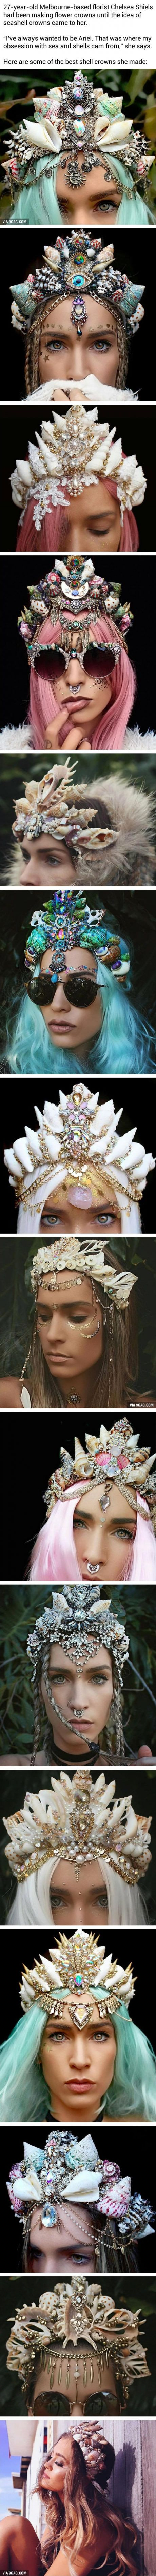 This girl makes mermaid crowns with shells, and they're just beautiful